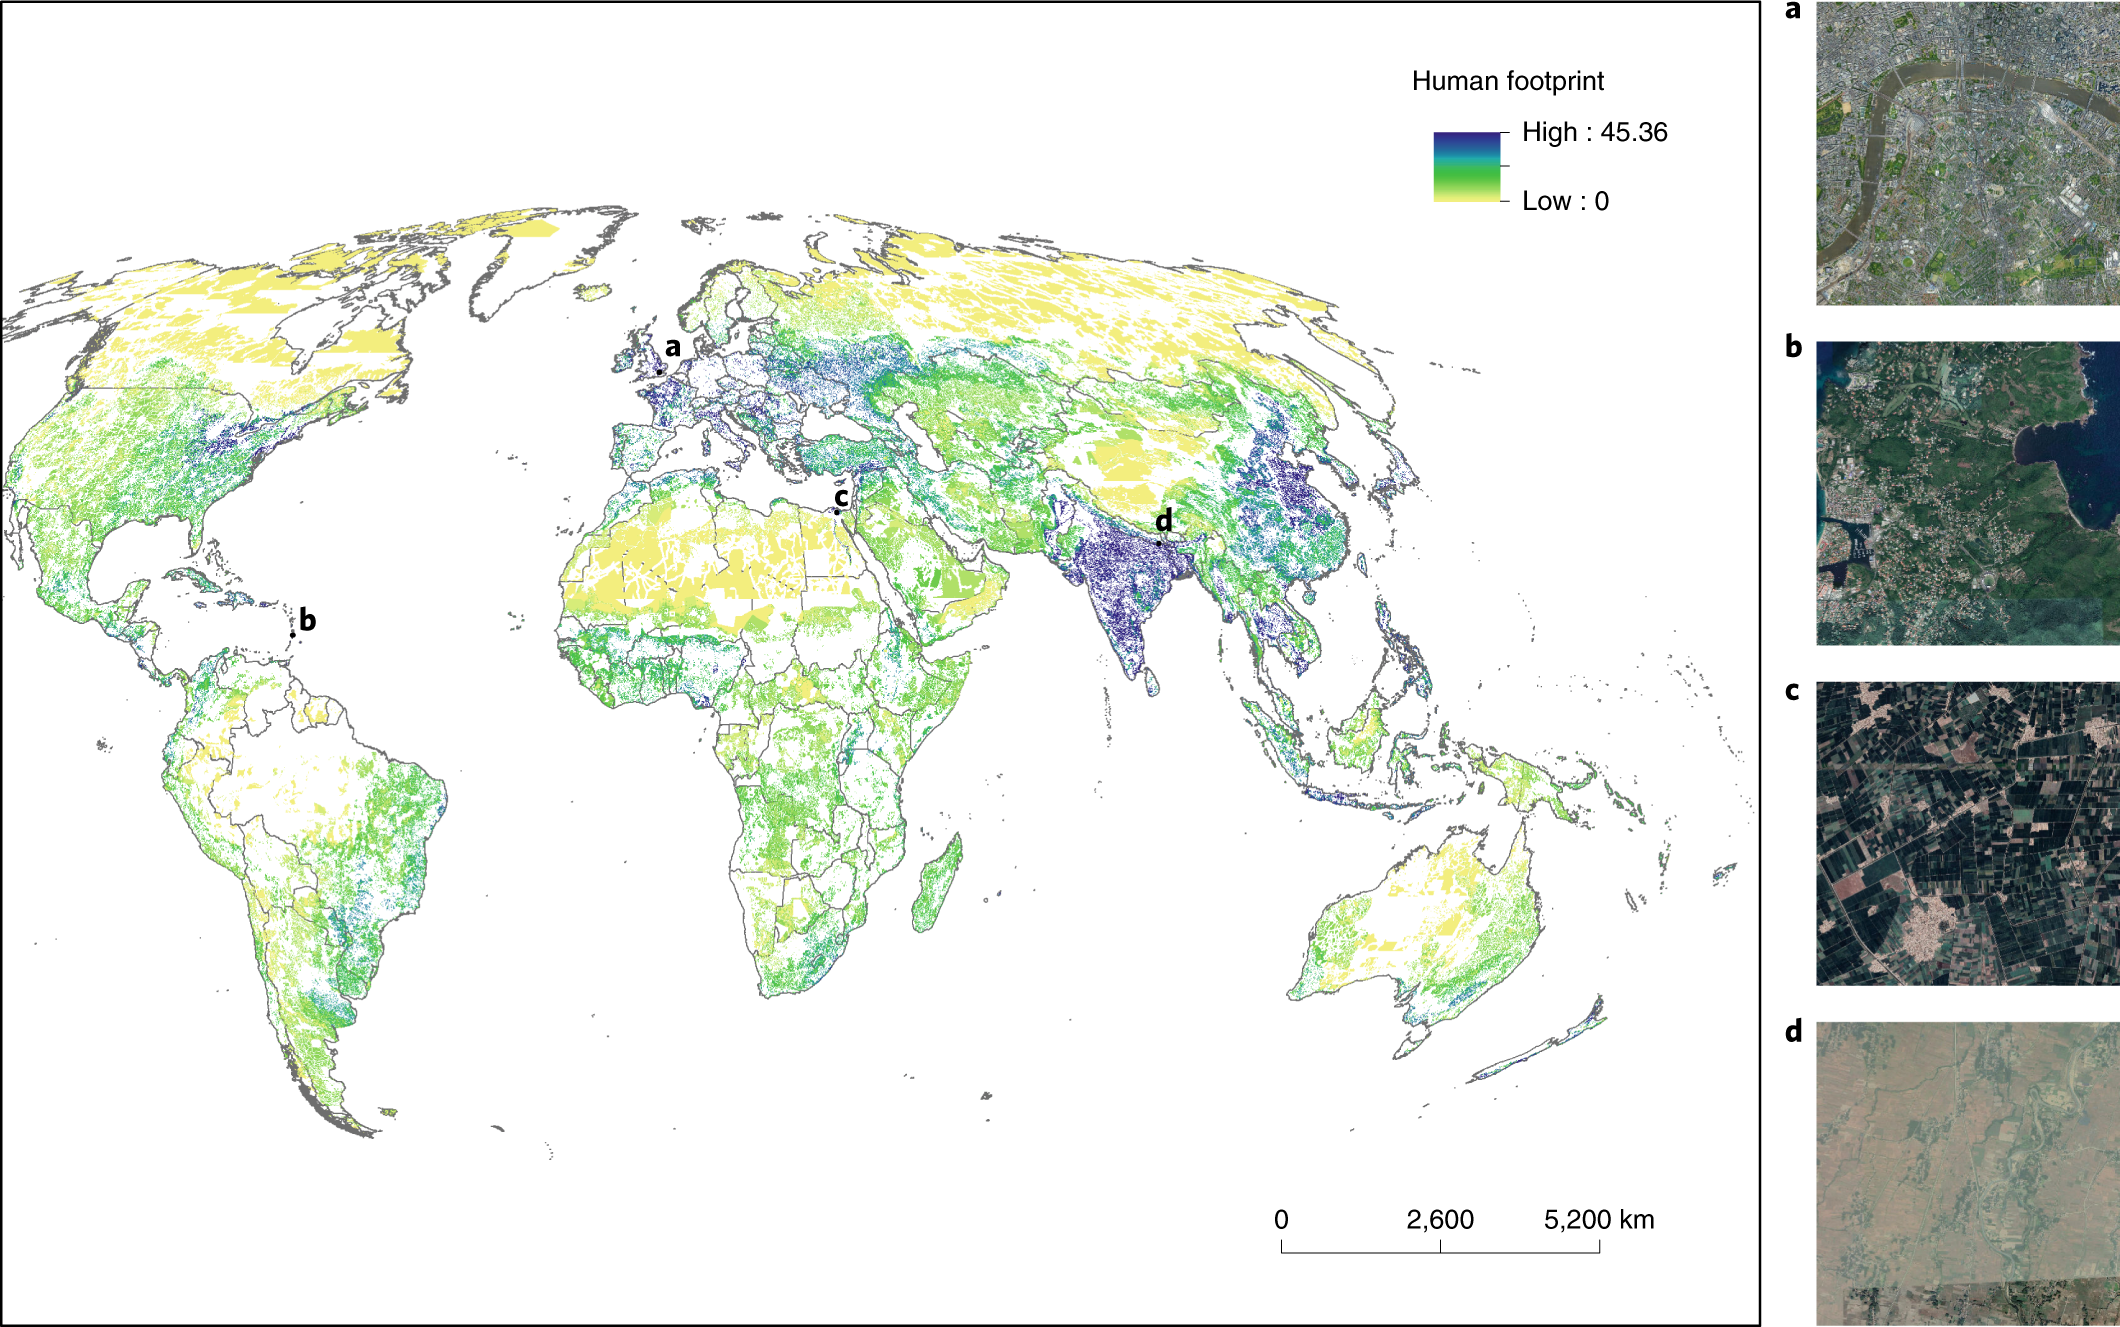 Protecting half of the planet could directly affect over one billion p